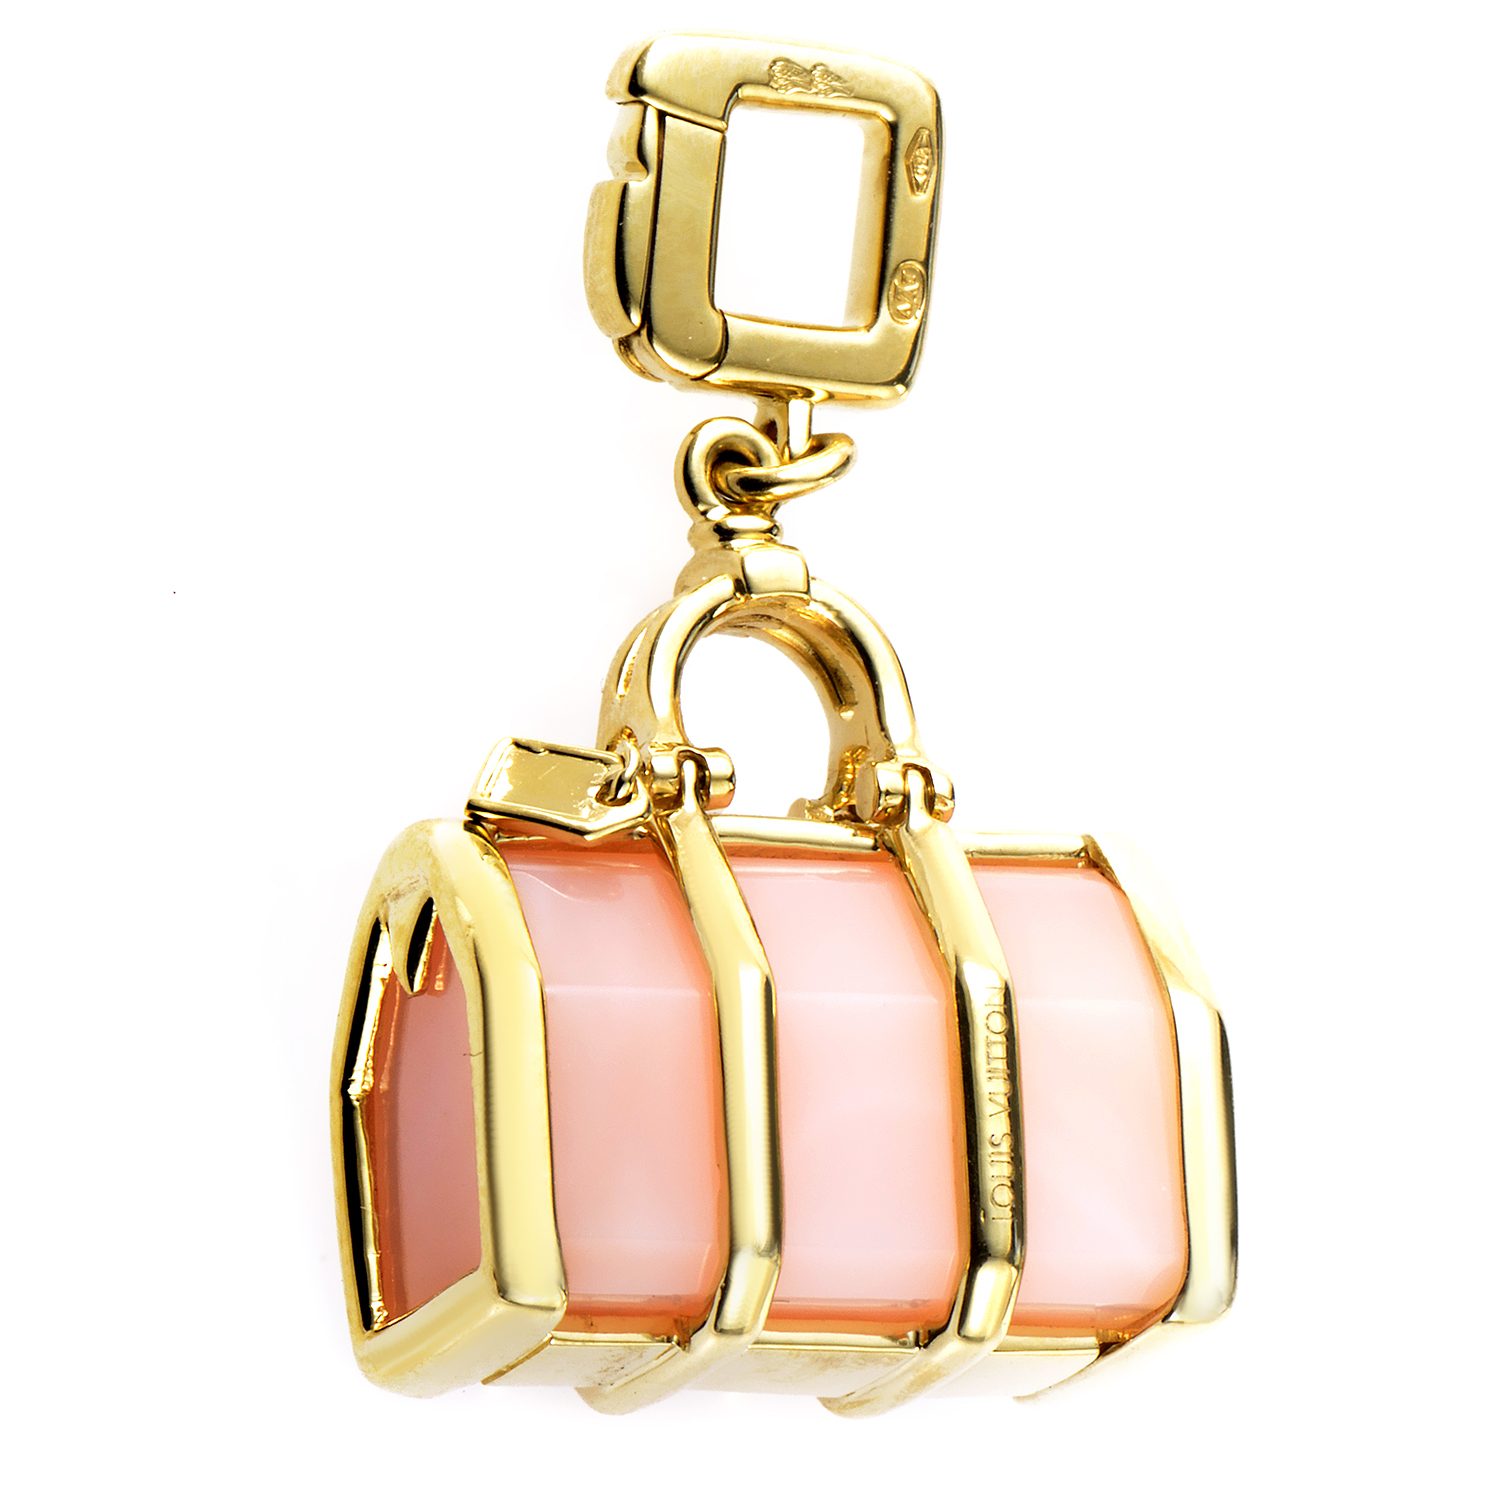 Louis Vuitton 18K Yellow Gold Rose Quartz Bag Charm